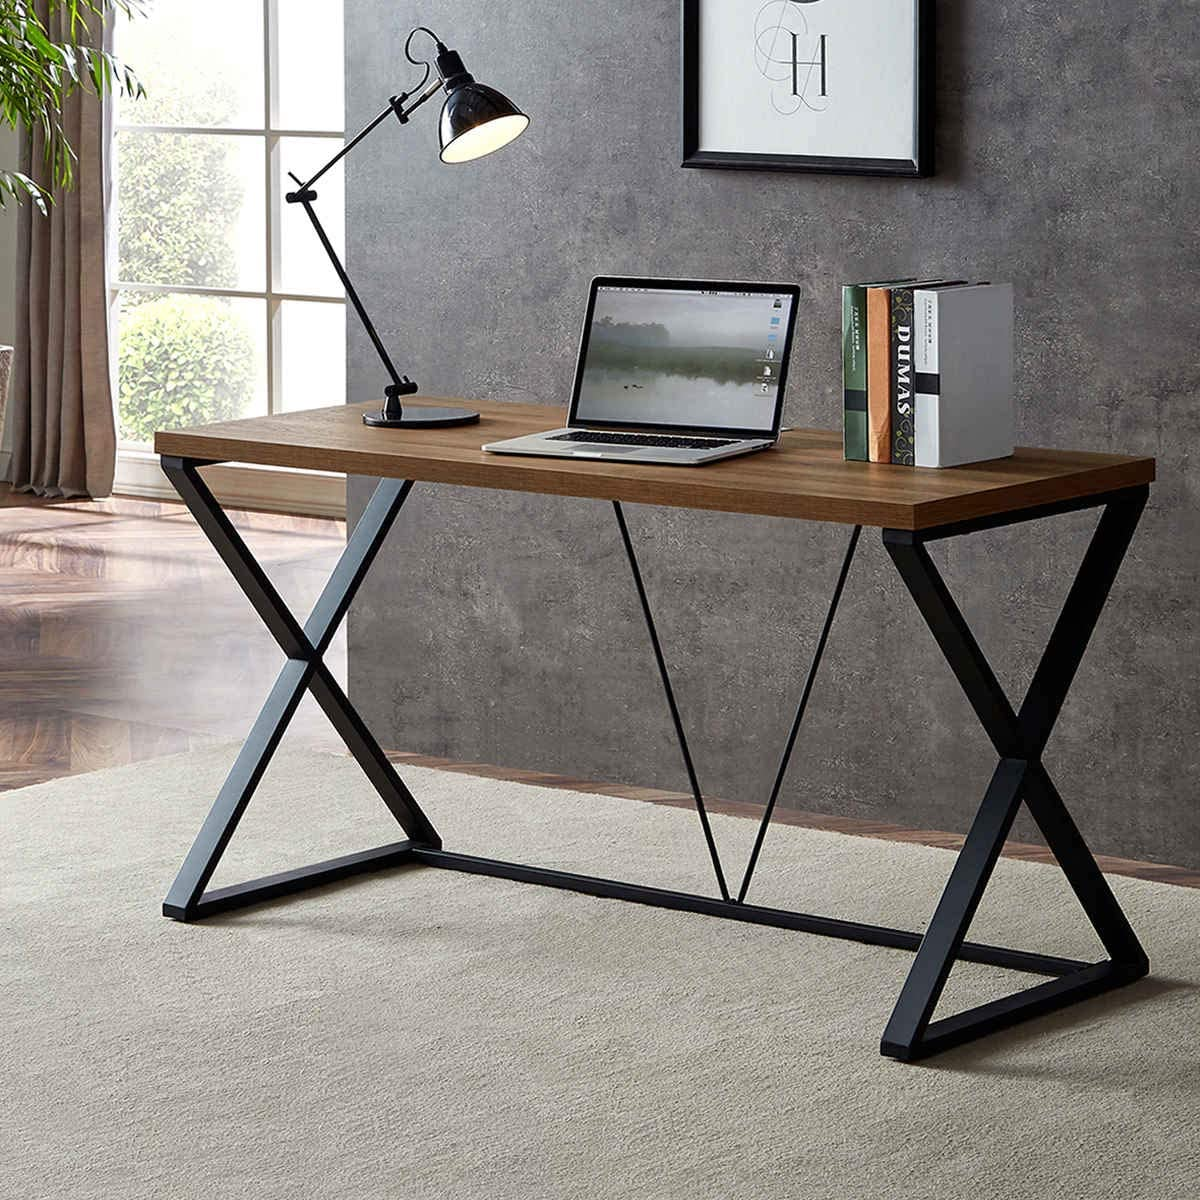 DYH Computer Desk, Industrial Wood and Metal X Writing Desk, Wood Table for Home Office, 55 inch